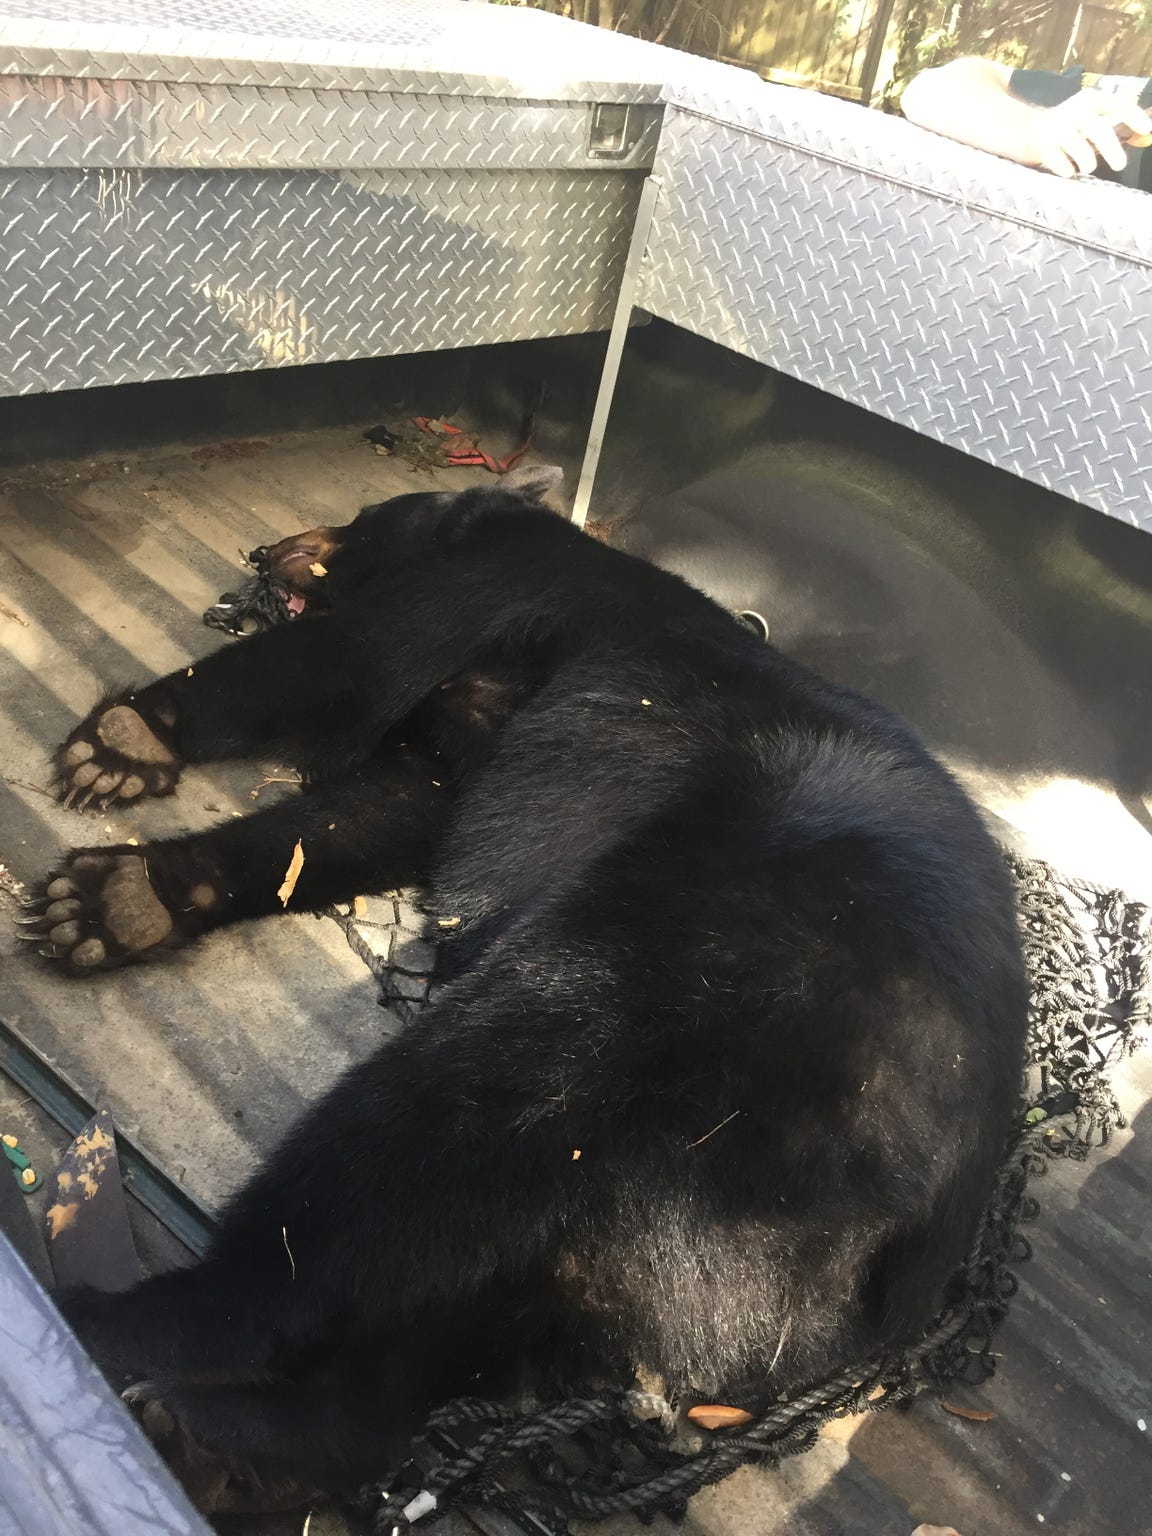 This black bear was safely tranquilized and released back into the Aplachicola National Forest after being found wandering near the Lovelace Drive area of Tallahassee.